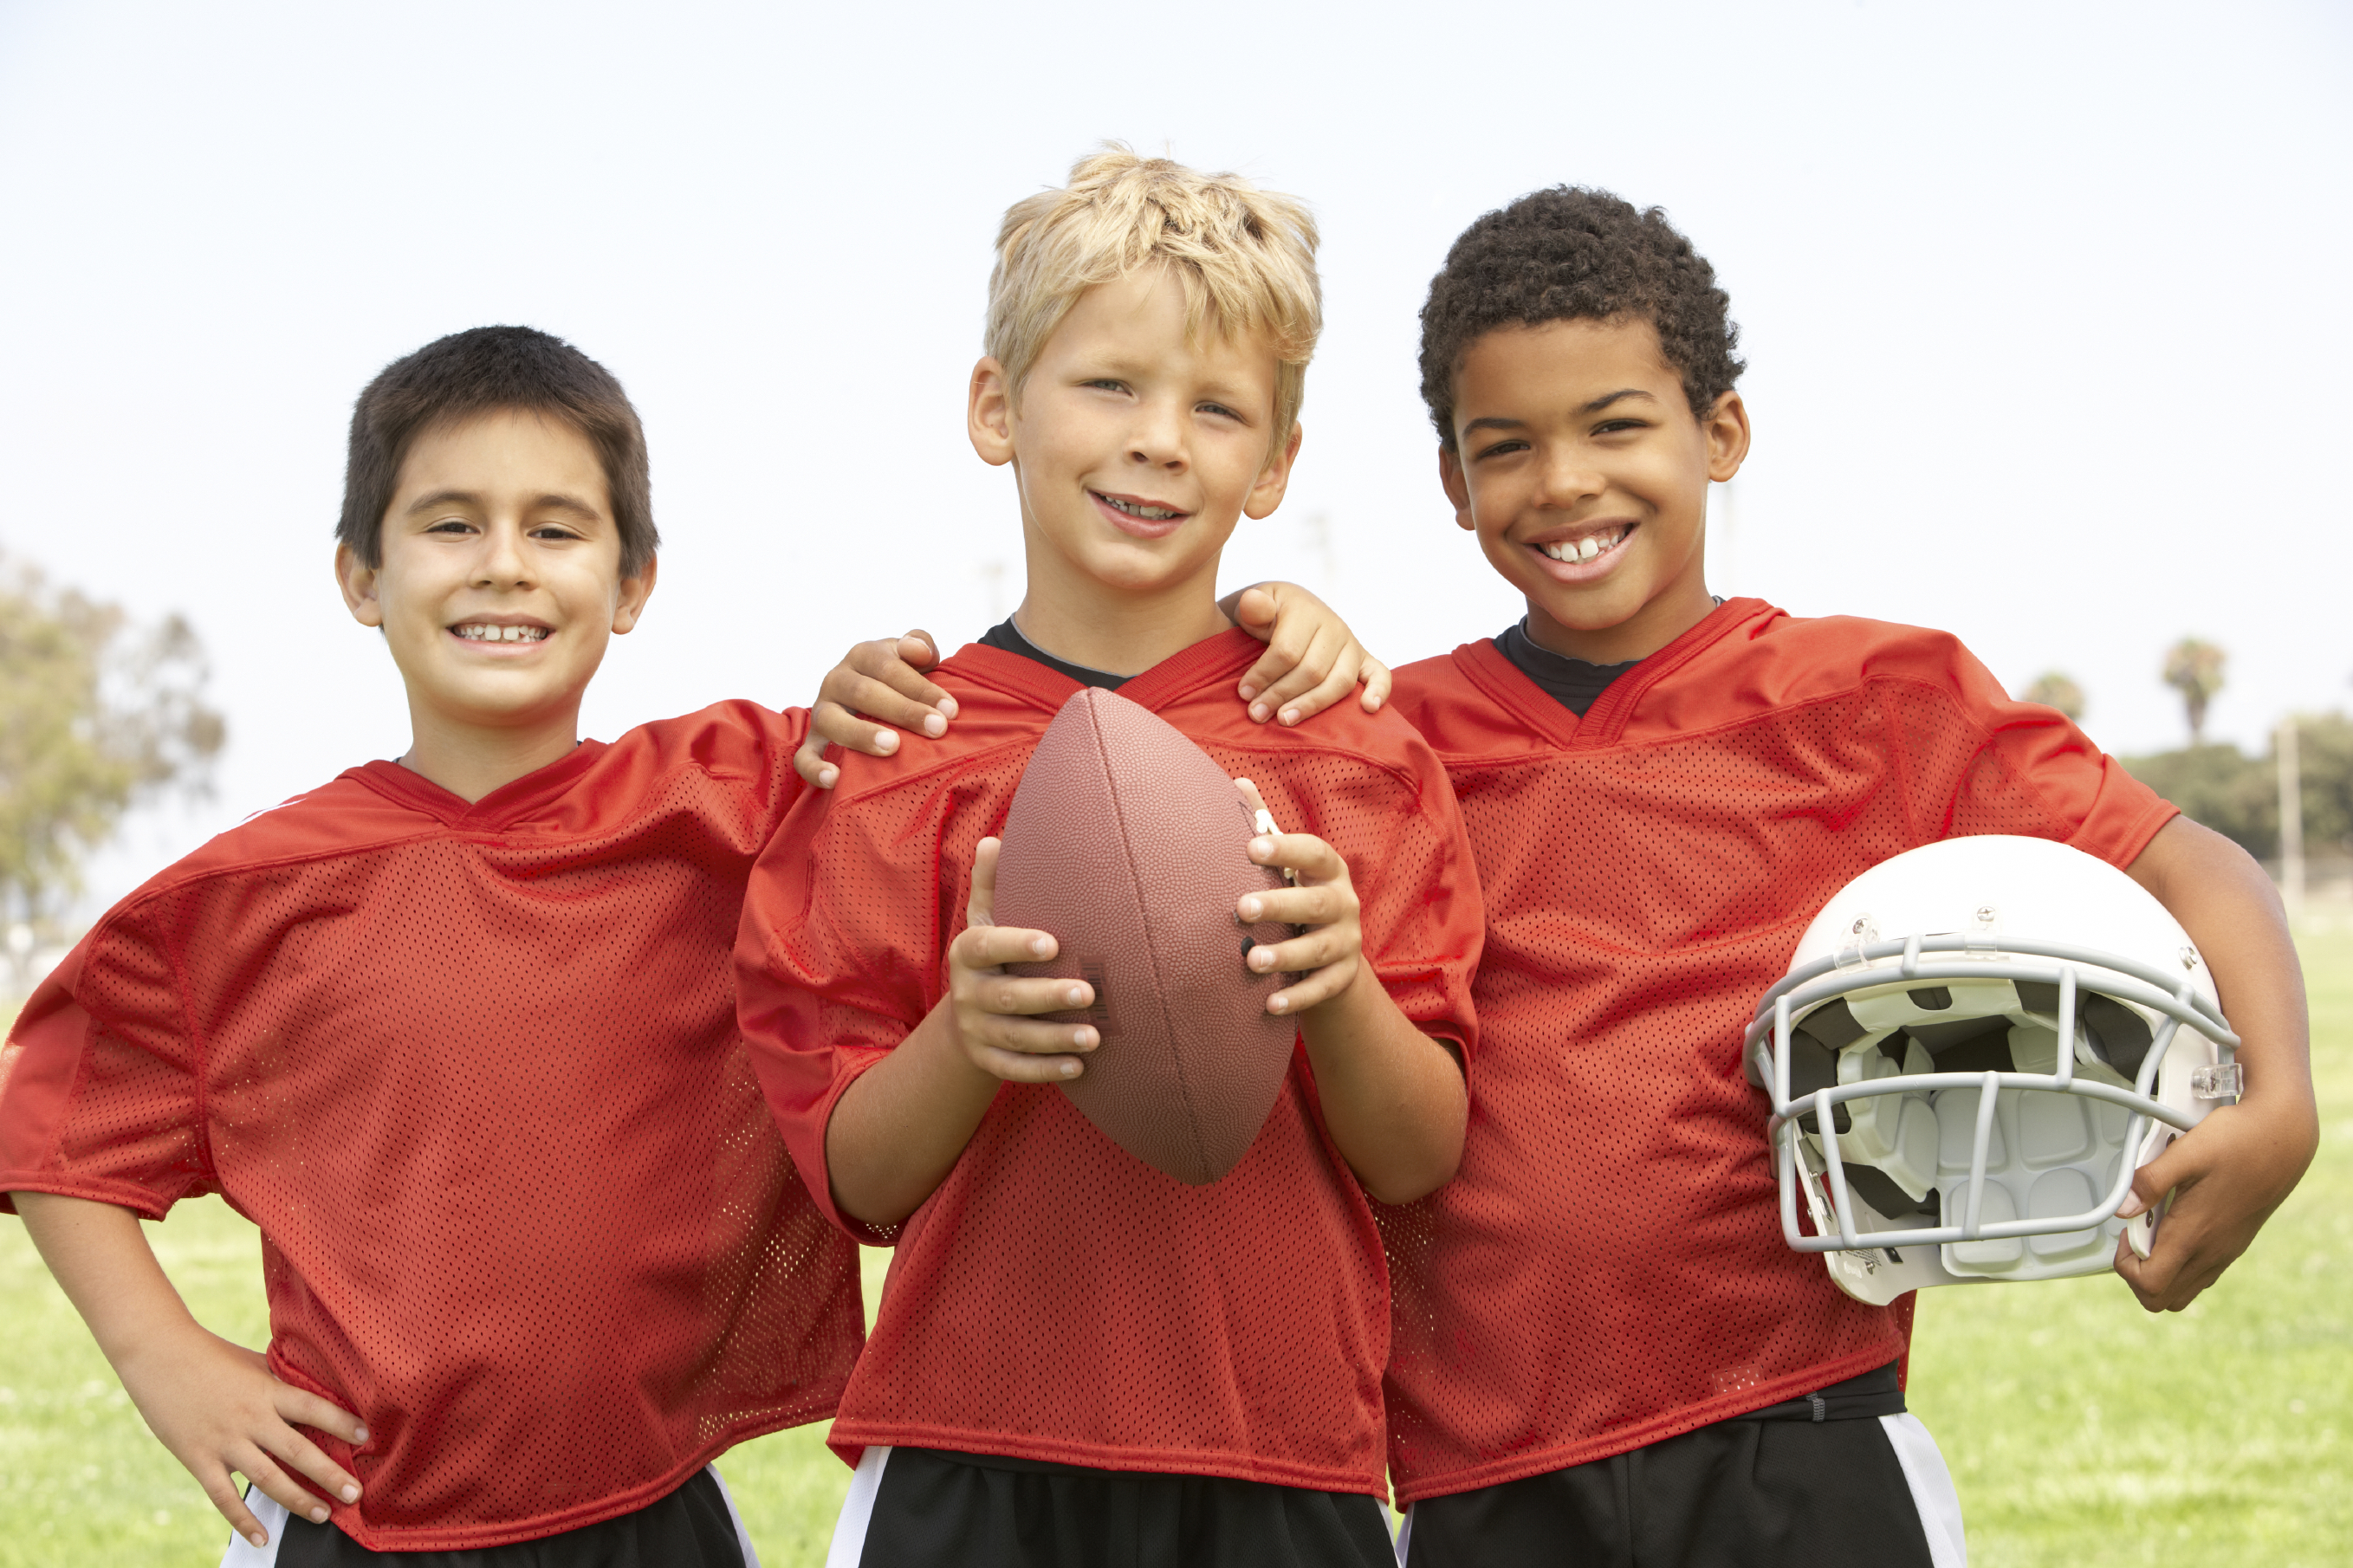 Playing football as a kid increases brain damage risk ...